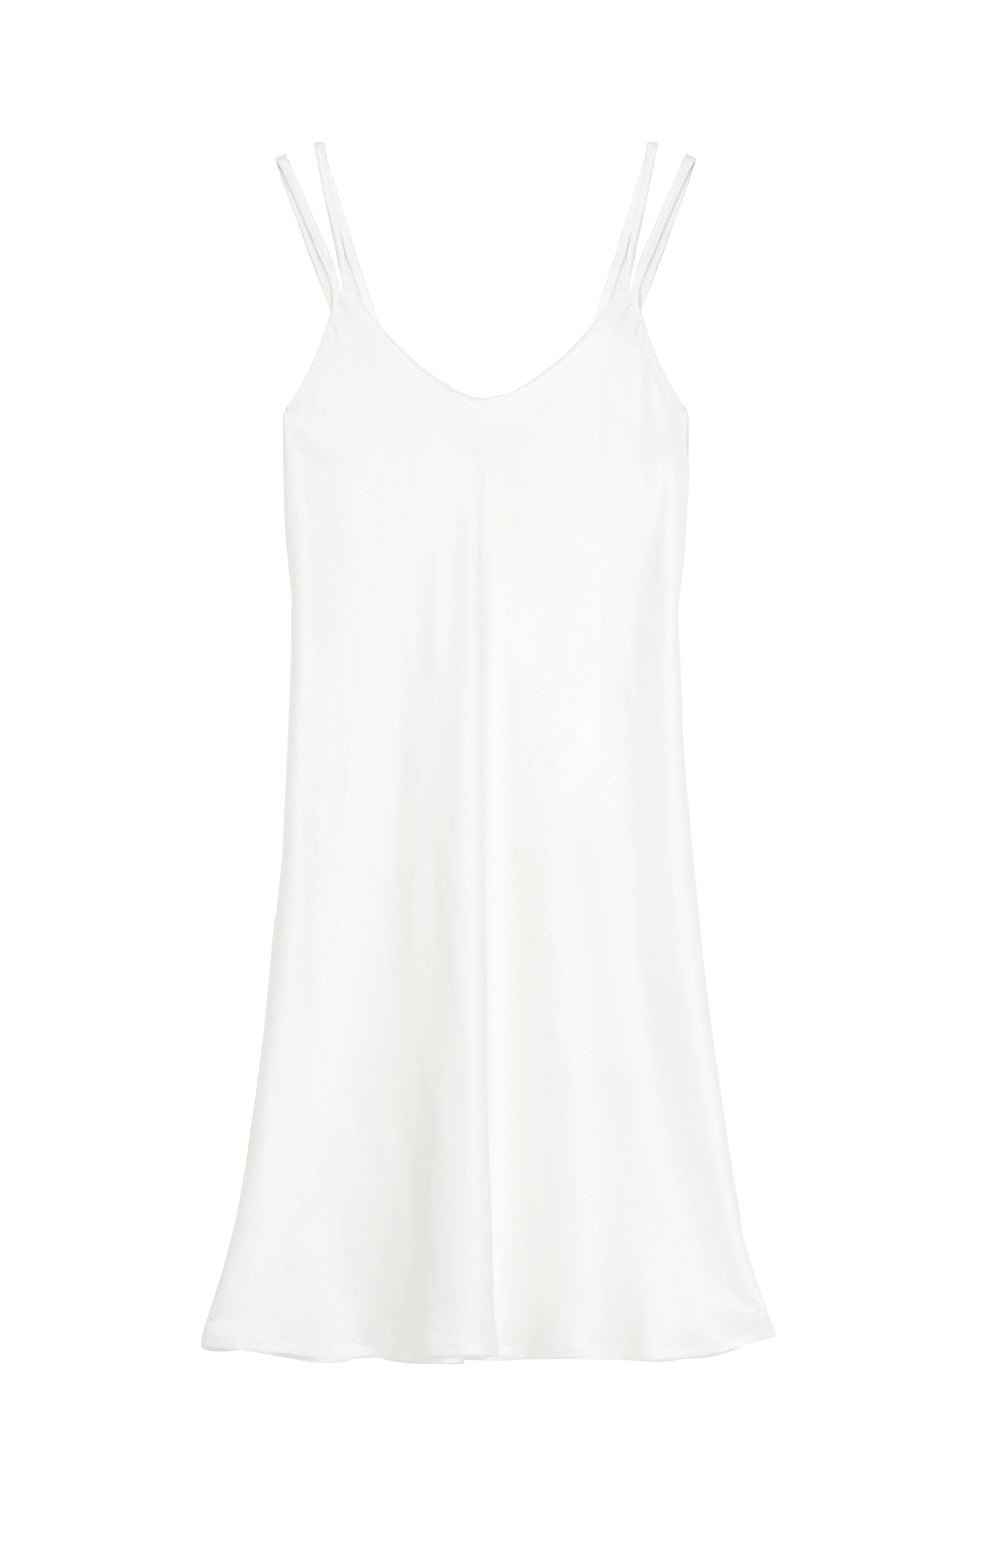 Luxury Ivory Silk Short Nightdress | Bonsoir of London